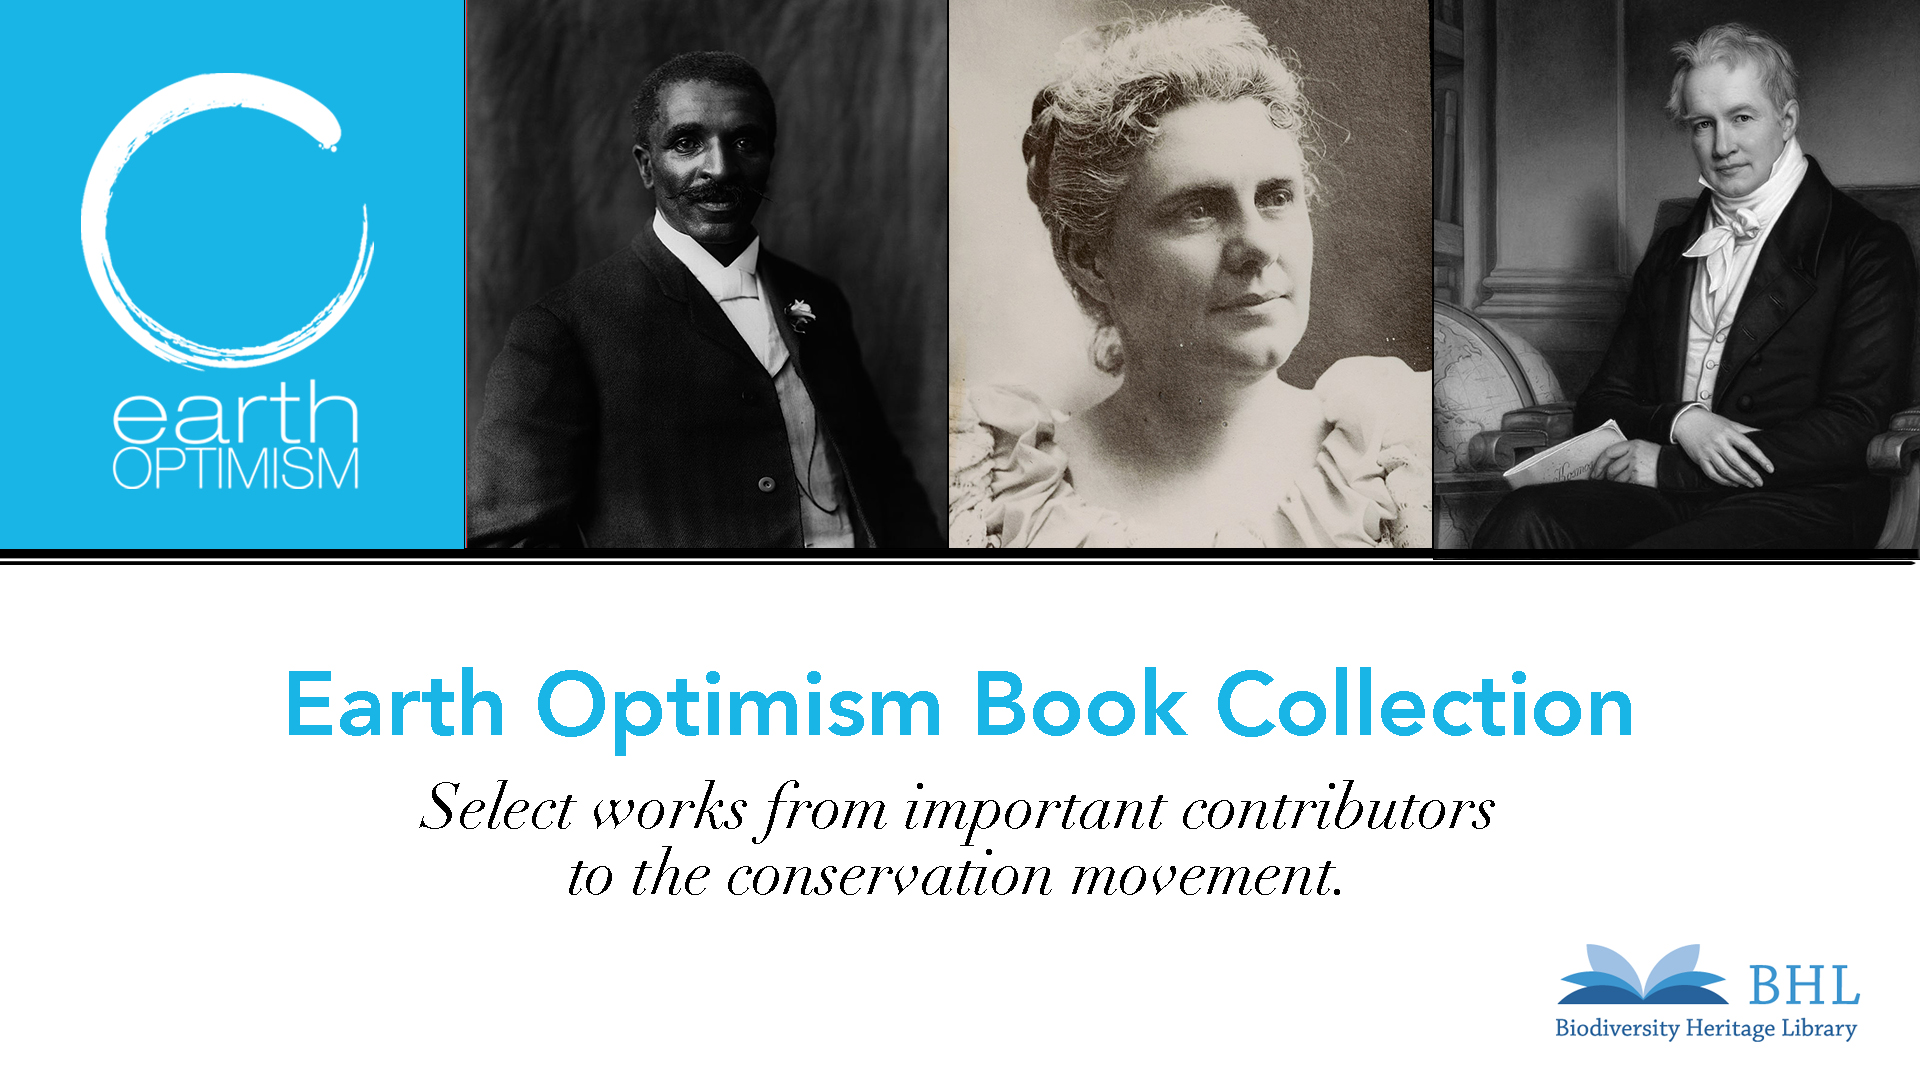 graphic for the Earth Optimism book collection